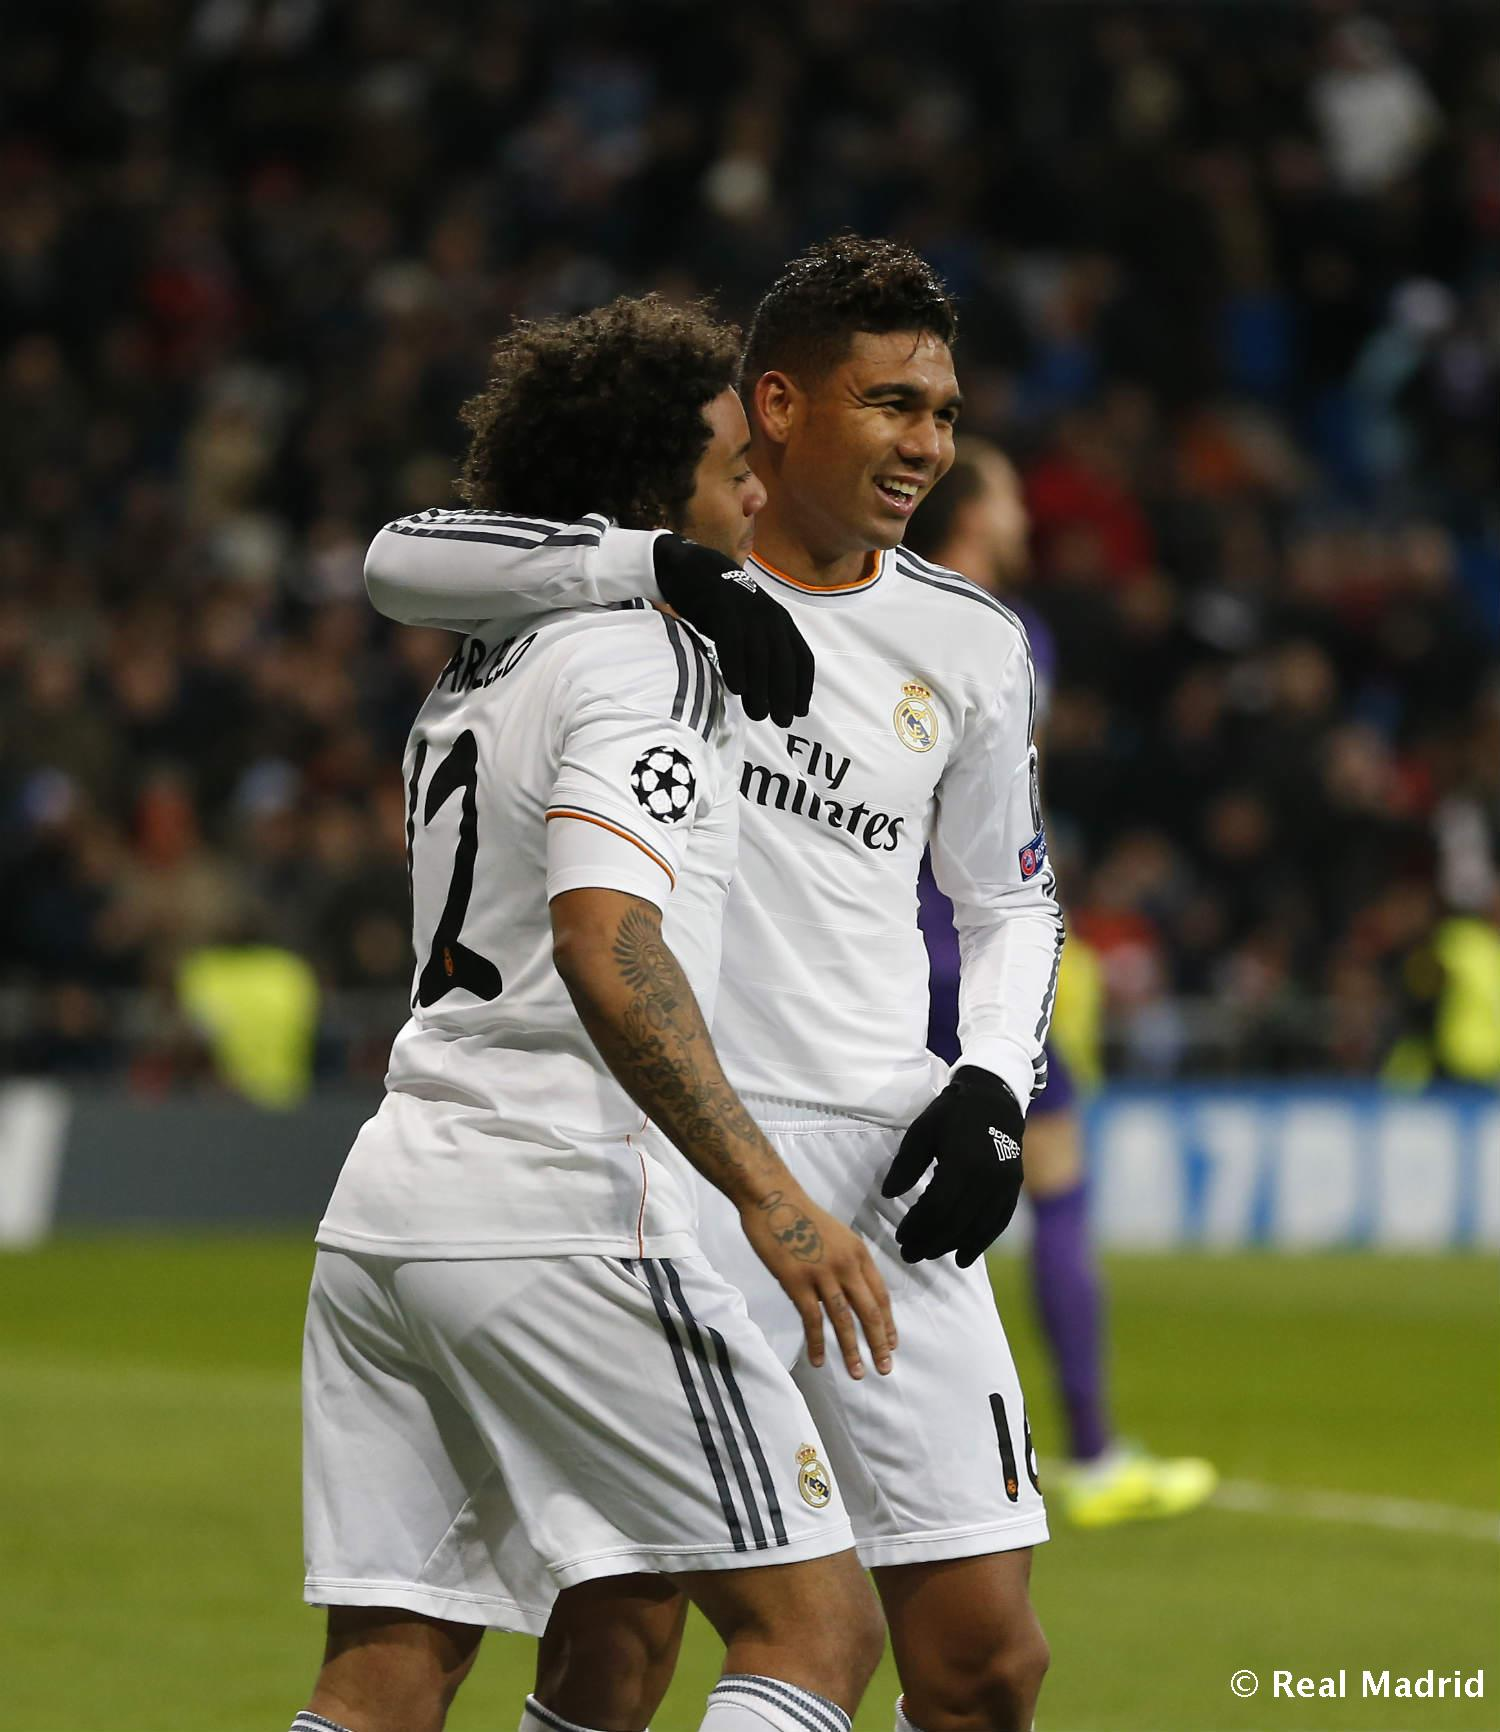 Real Madrid - Casemiro y Marcelo - 27-01-2014